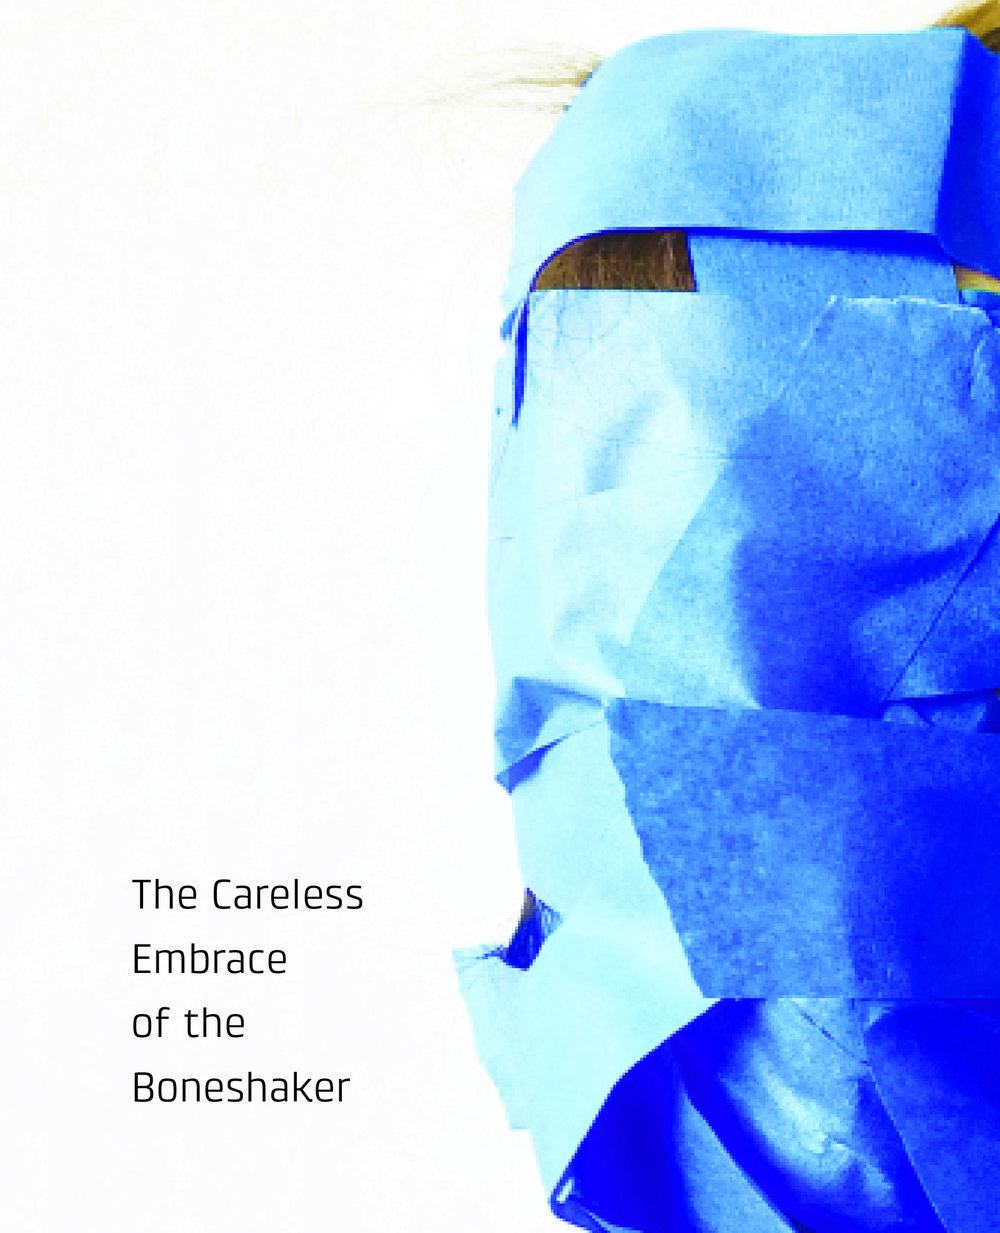 The-Careless-Embrace-of-the-Boneshaker-front-cover-1.jpg